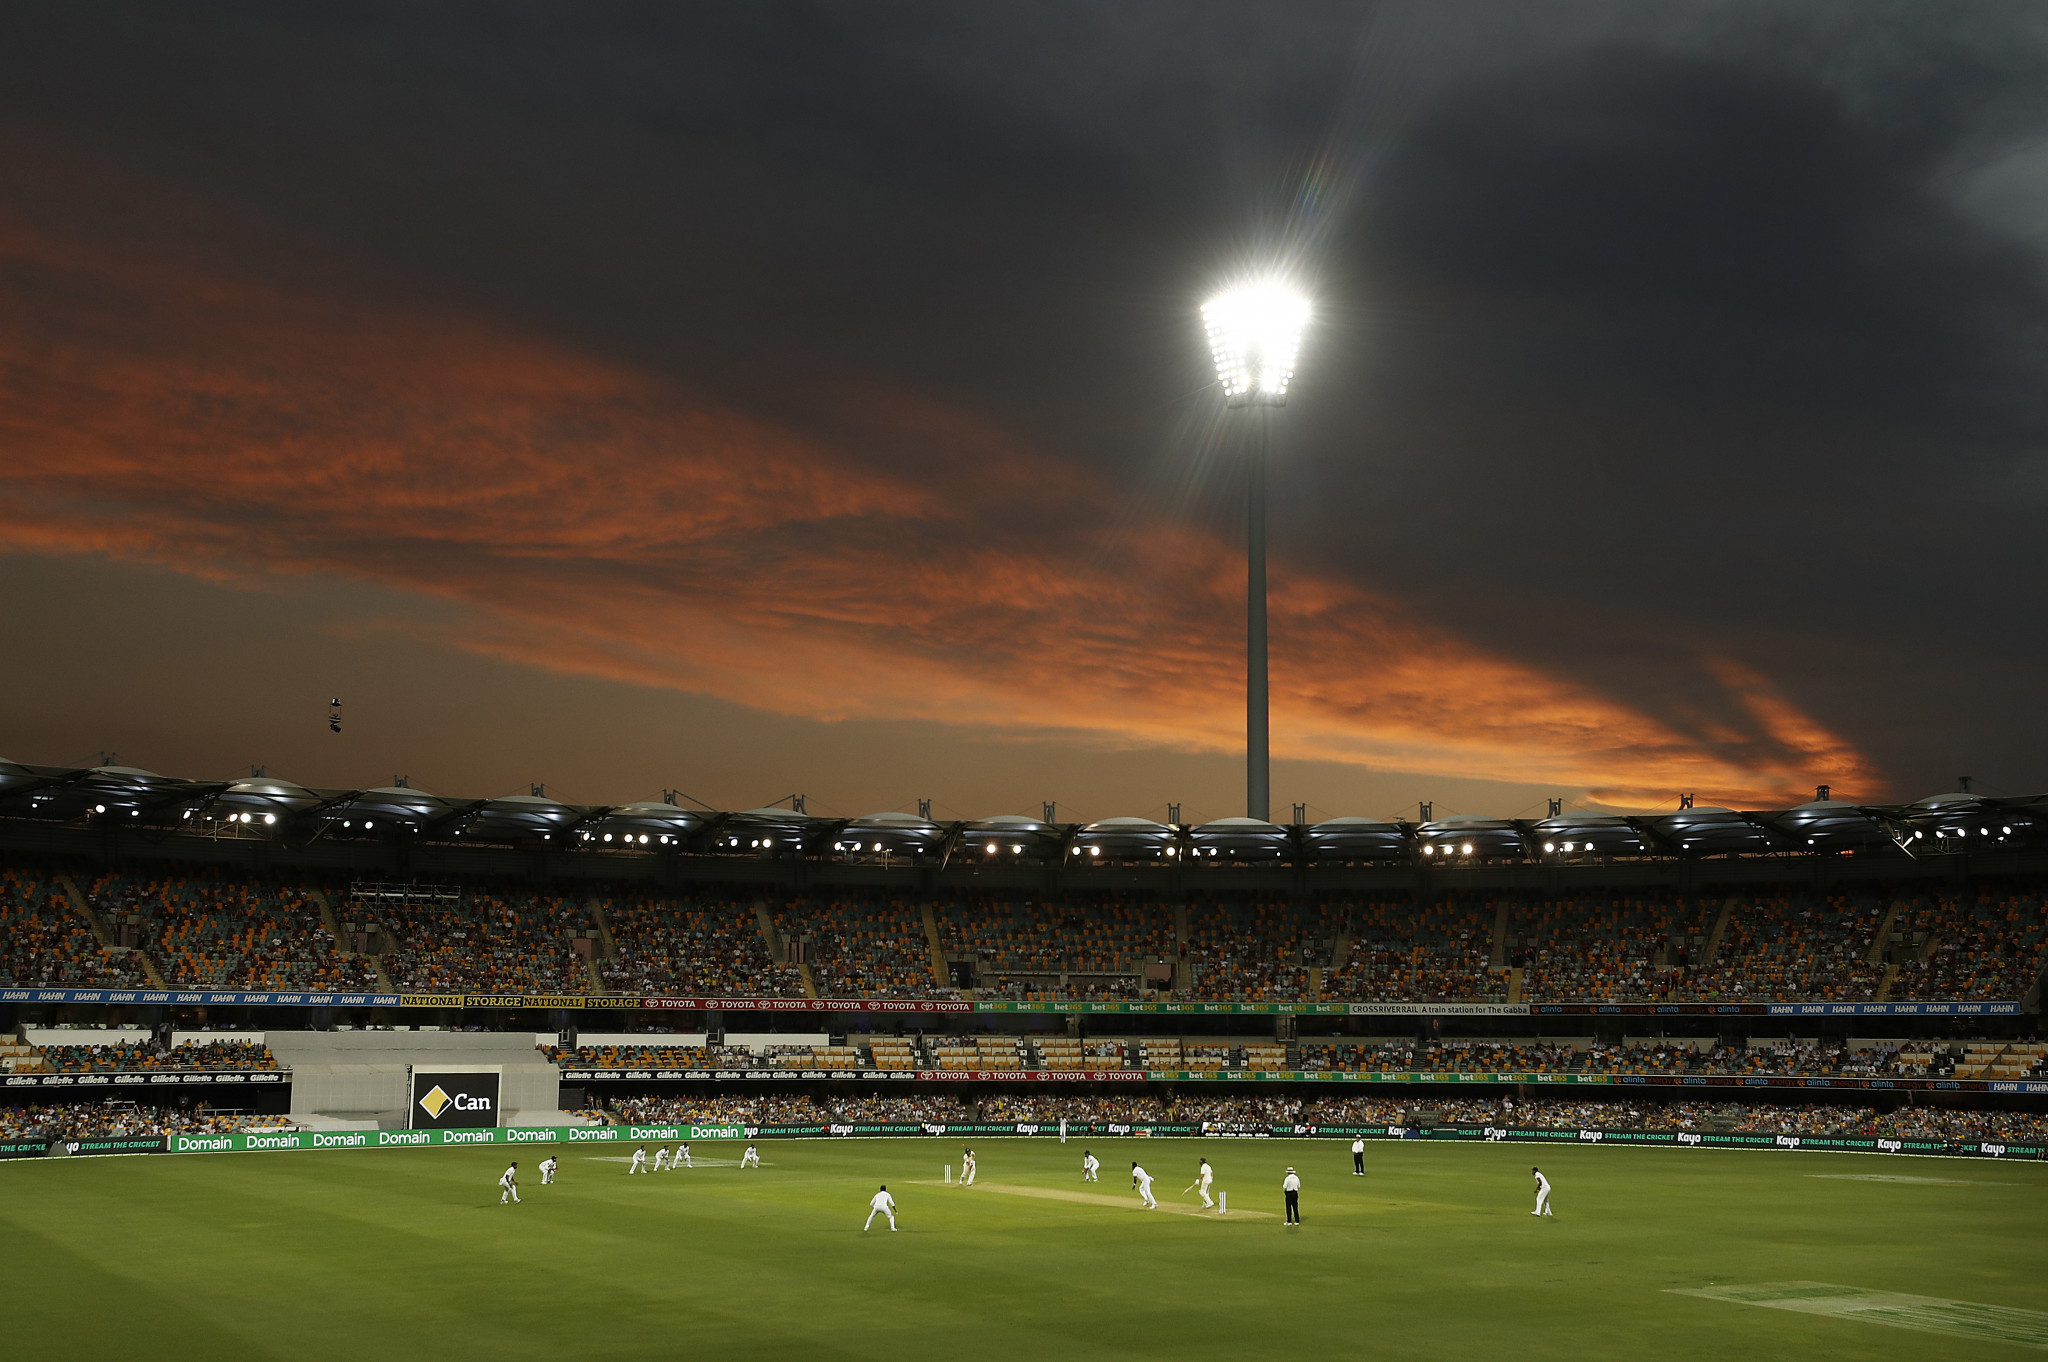 Brisbane Cricket Ground, commonly known as the Gabba, is one of the city's best-known sporting arenas ©Getty Images